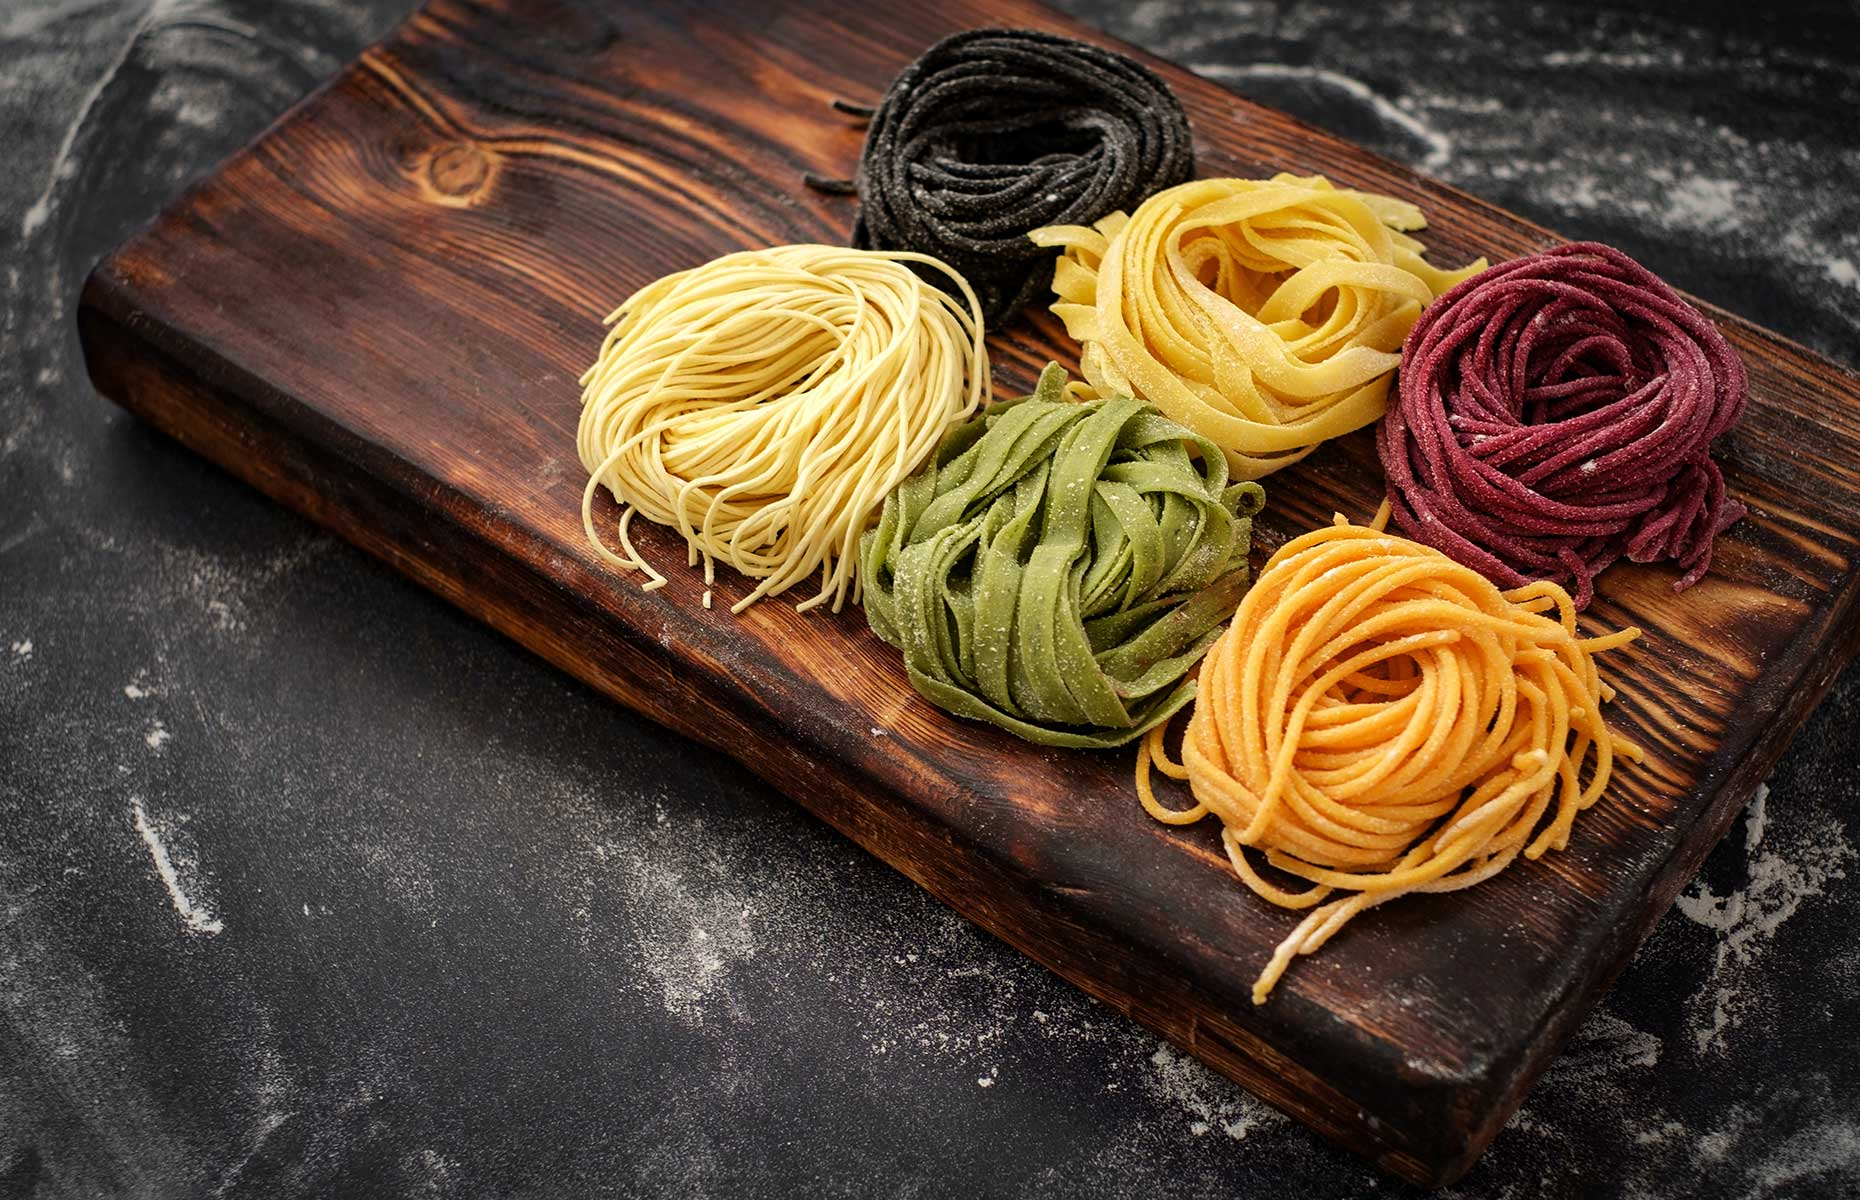 How to make colourful pasta at home with beetroot and spinach